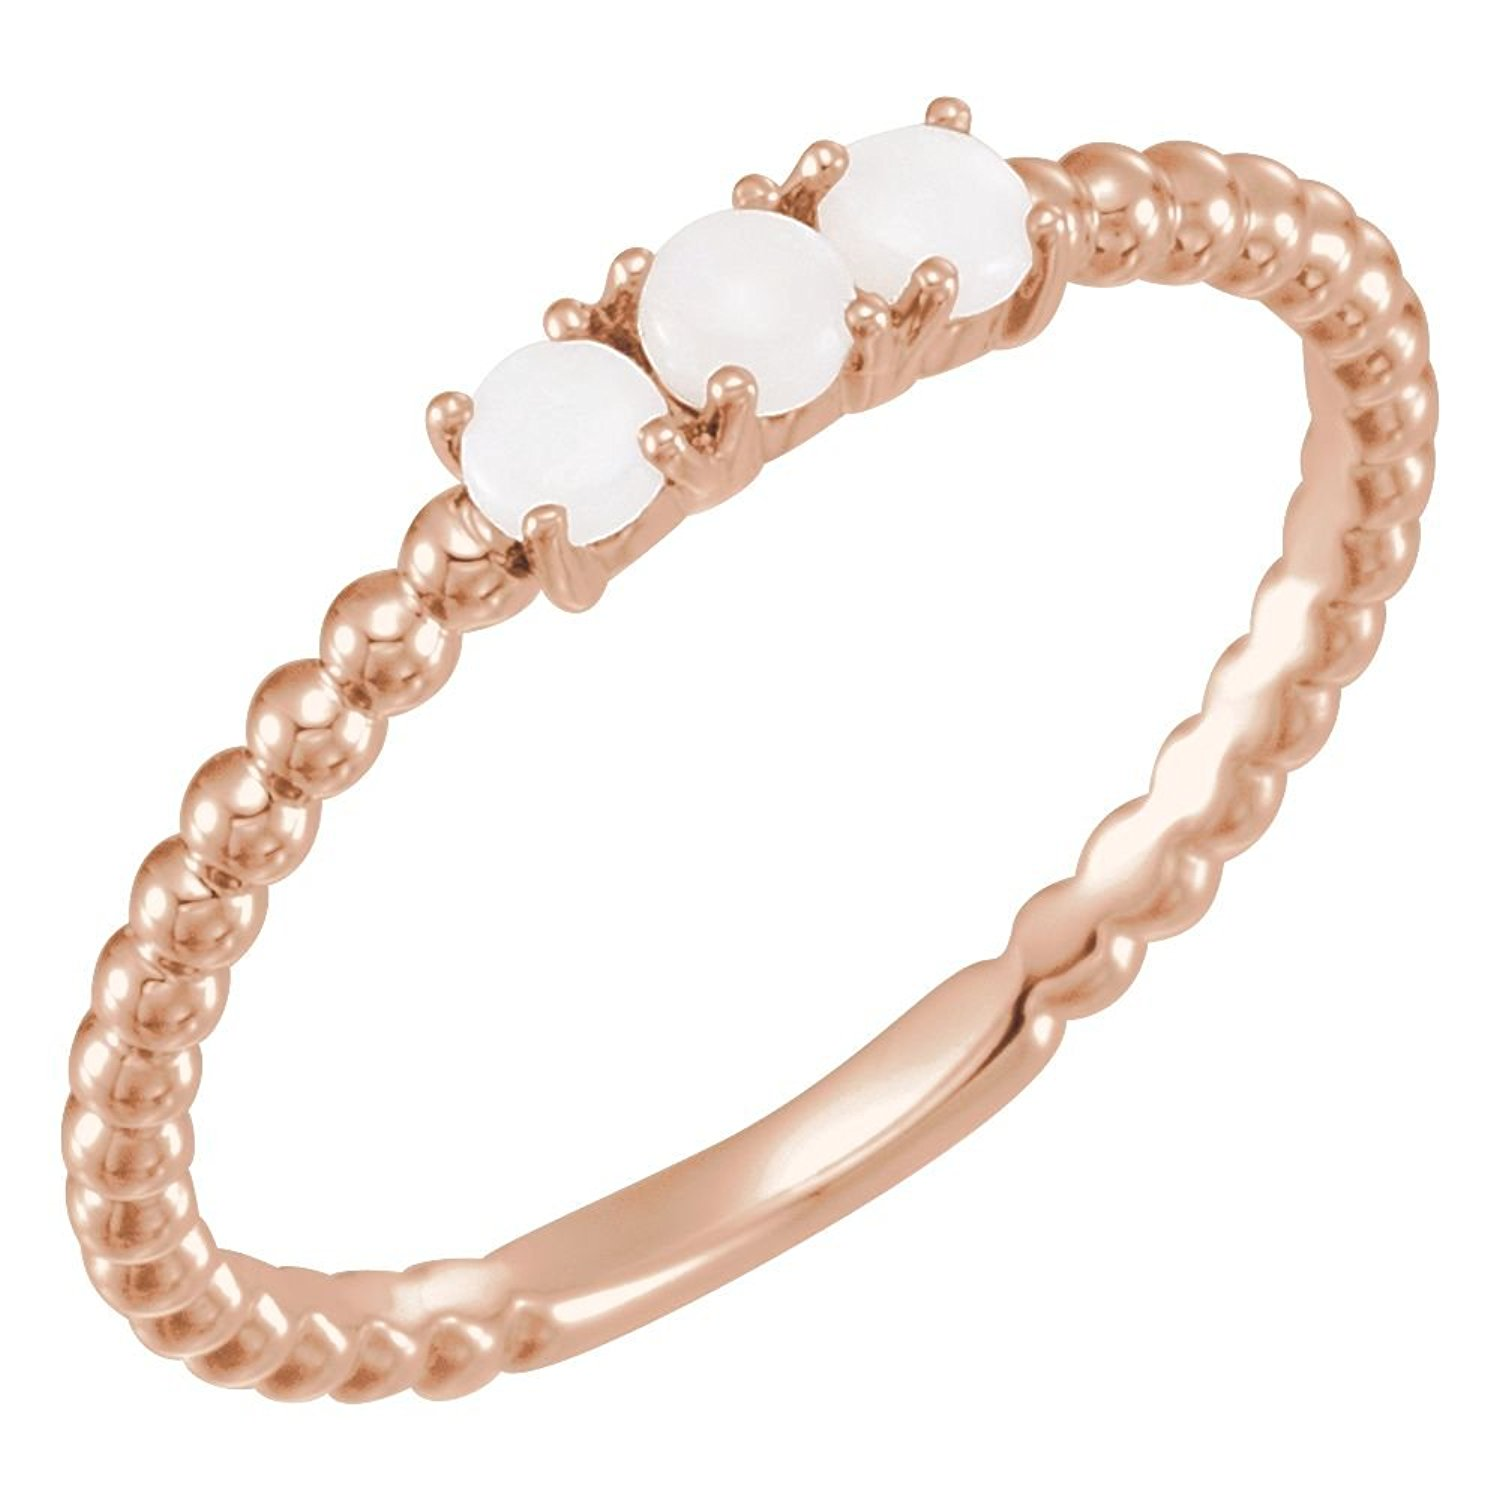 Bonyak Jewelry 14k Rose Gold Opal Stackable Beaded Ring - Size 7